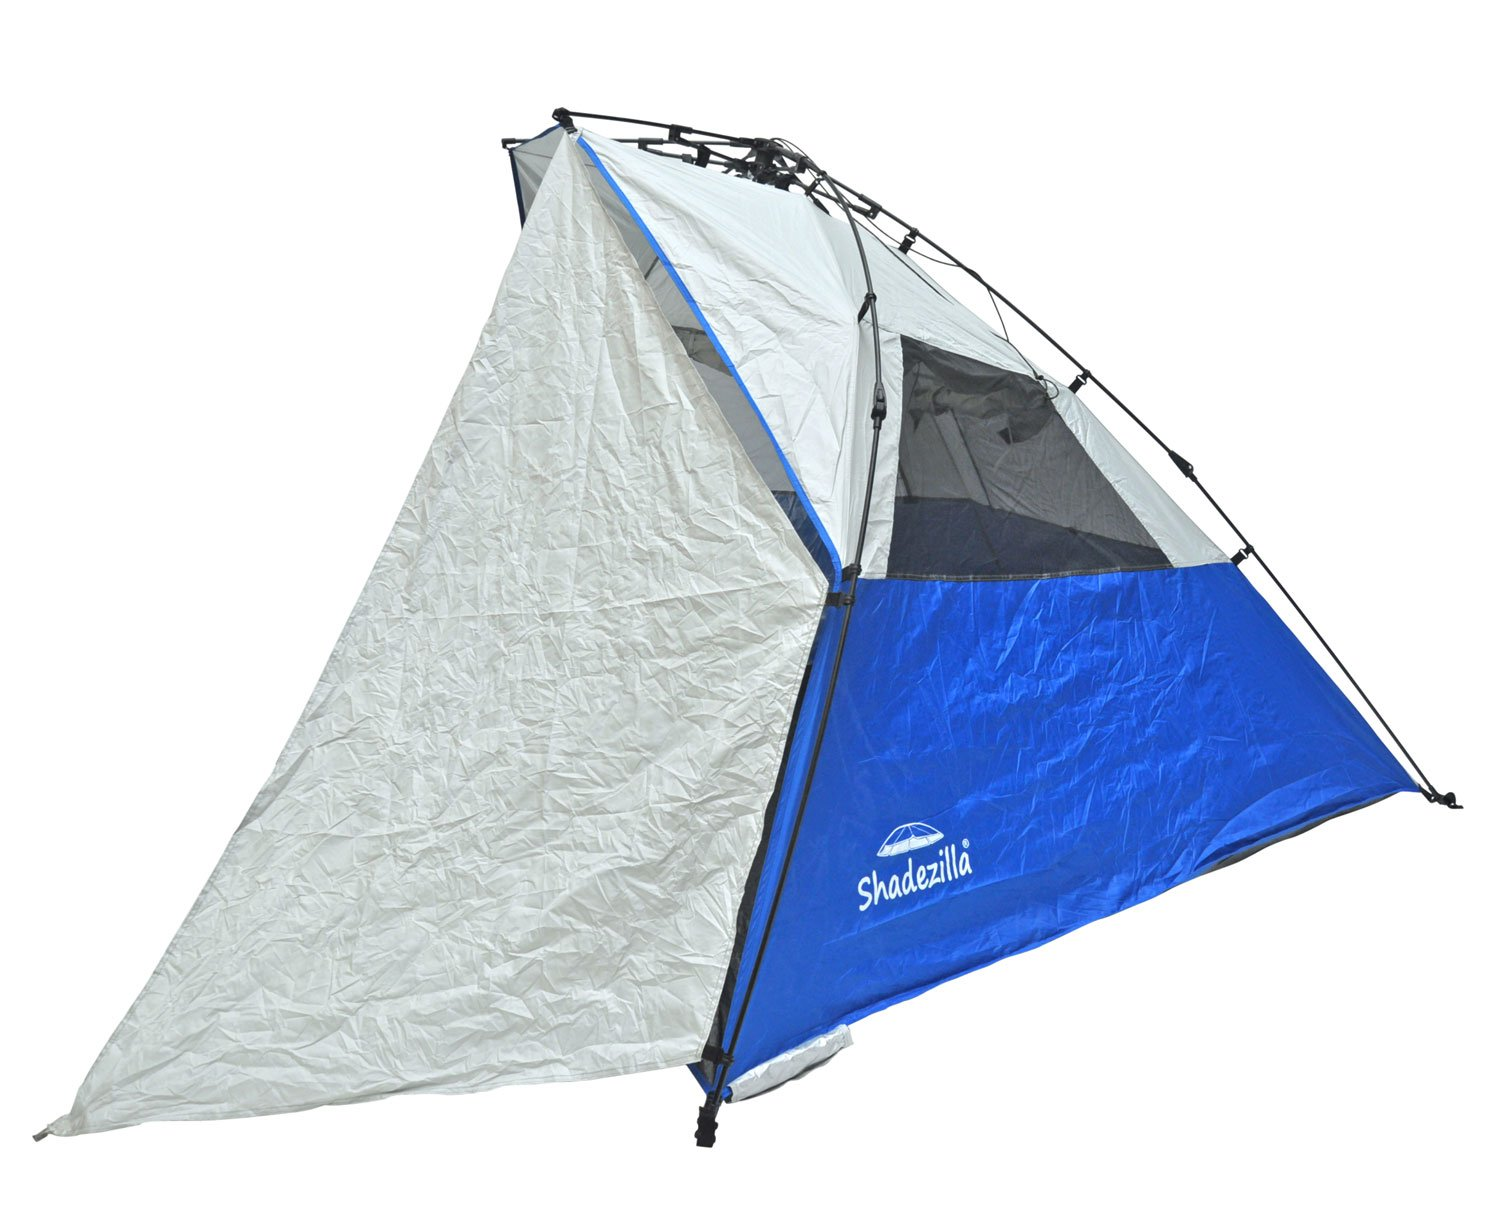 Amazon.com Deluxe Instant PopUp Beach Tent / Shelter / Cabana UPF 100+ with Side Wall Sports u0026 Outdoors  sc 1 st  Amazon.com & Amazon.com: Deluxe Instant PopUp Beach Tent / Shelter / Cabana UPF ...